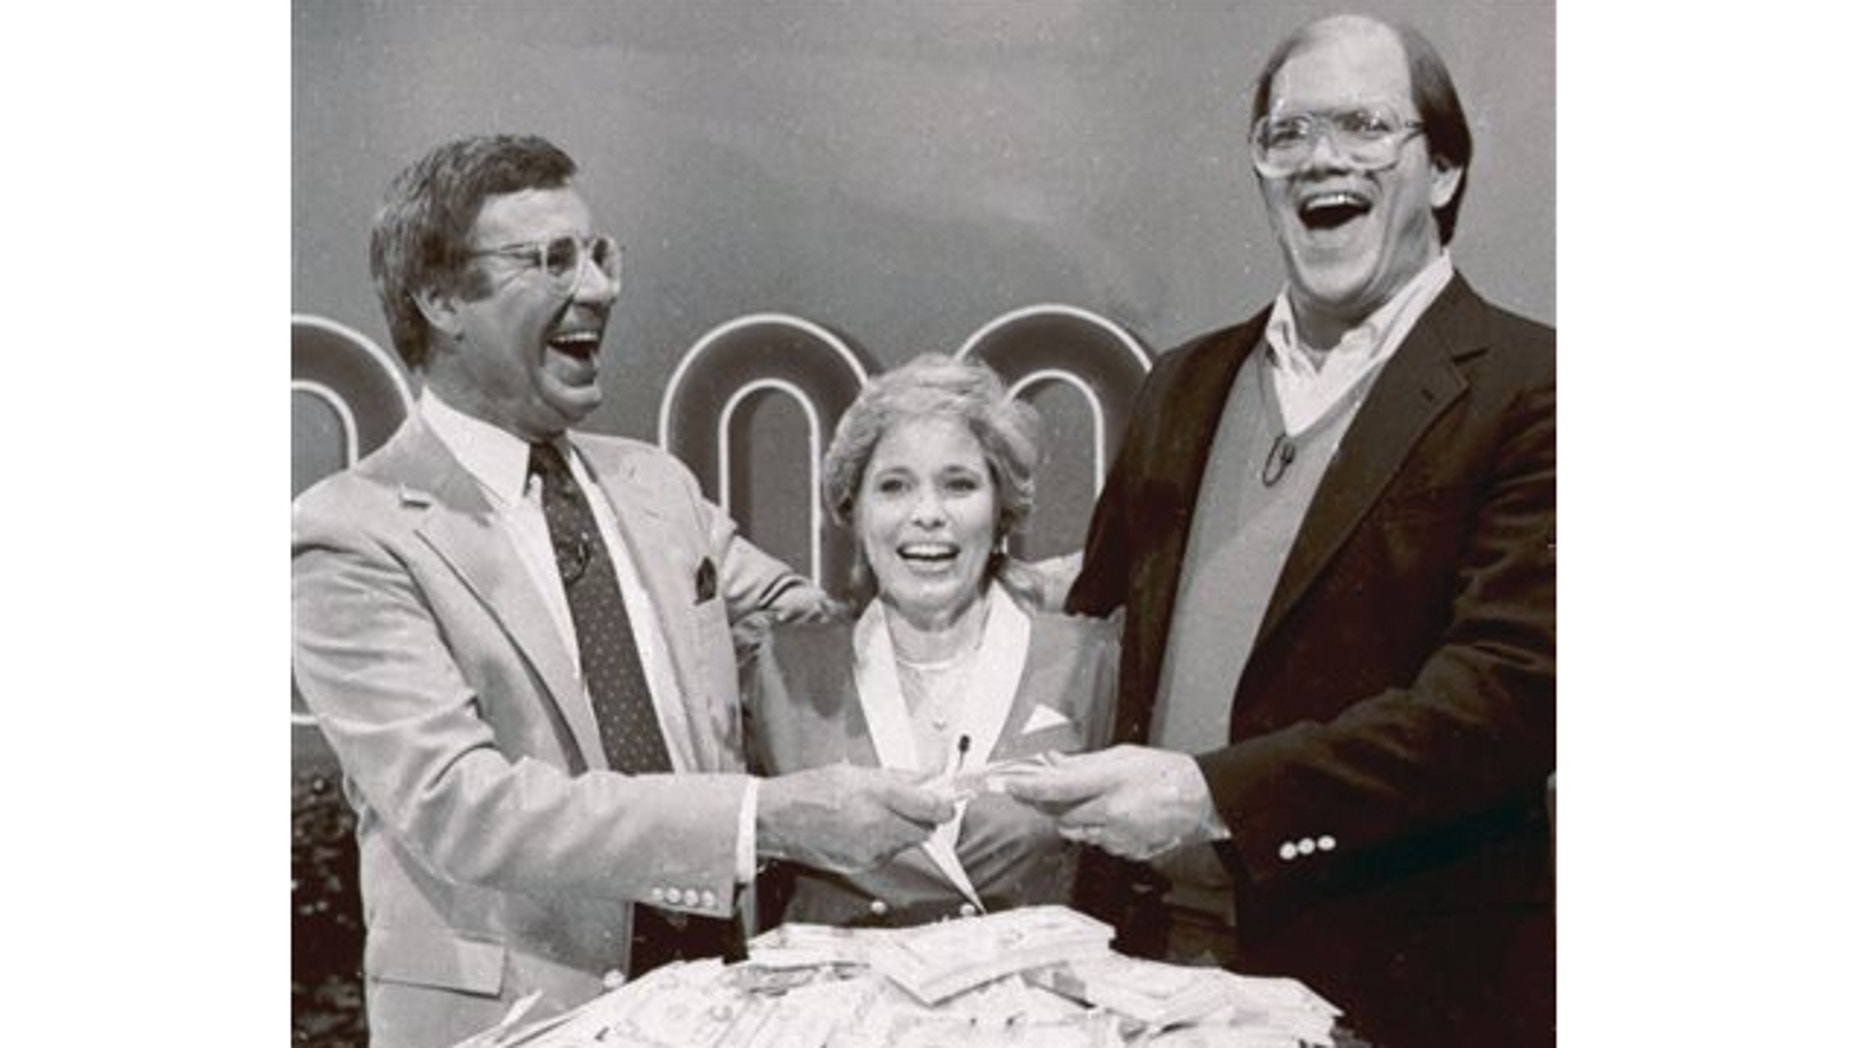 """FILE: Jan. 16, 1986: Host Jim Lange, left, congratulating Connie and Steve Rutenbar of Mission Viejo, Calif., after they won $1 million on the TV show, """"The $1,000,000 Chance of a Lifetime""""."""